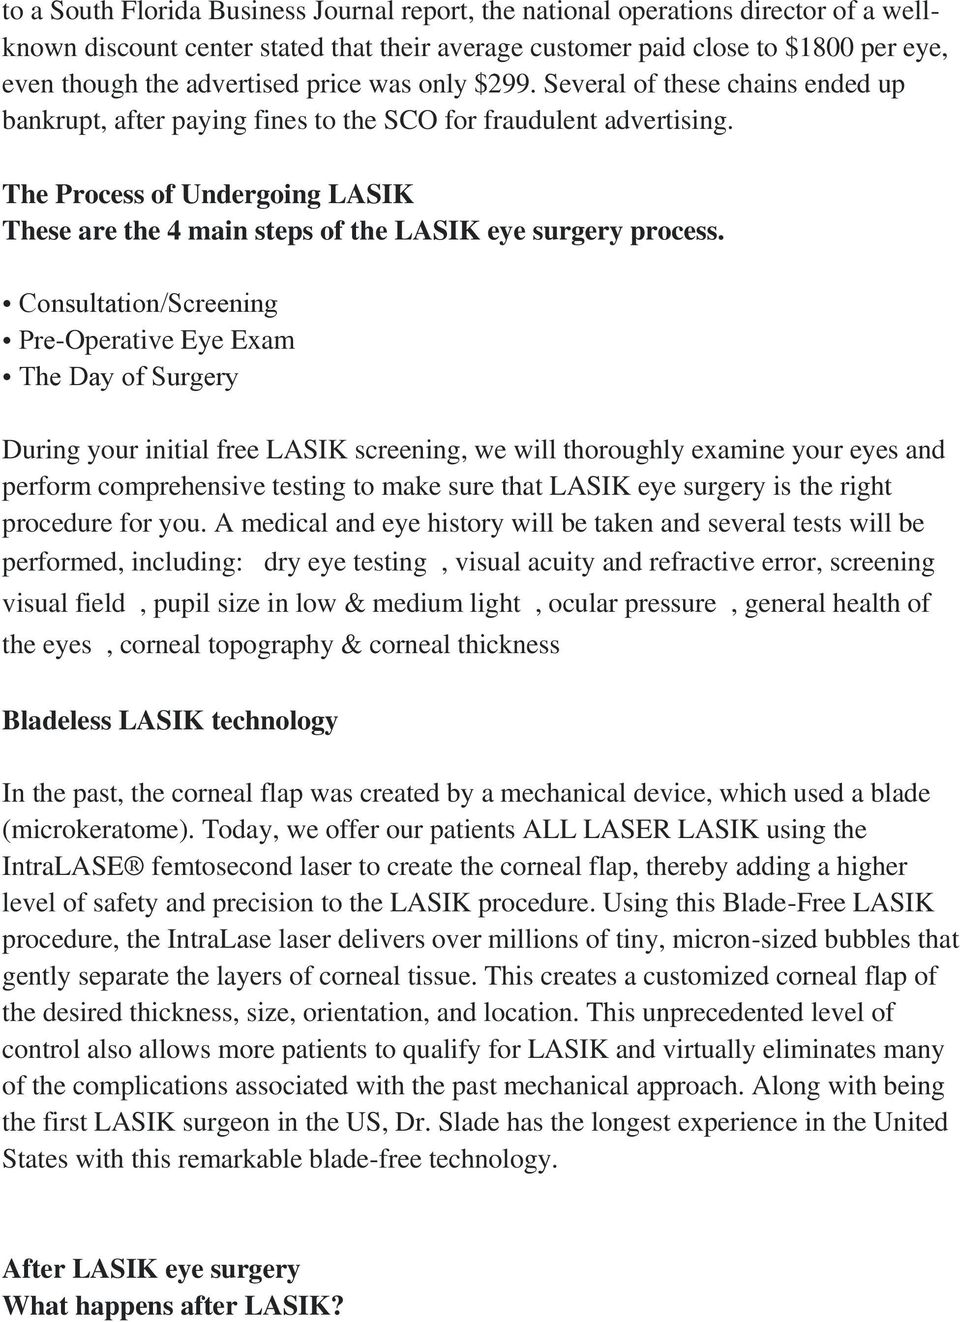 The Process of Undergoing LASIK These are the 4 main steps of the LASIK eye surgery process.